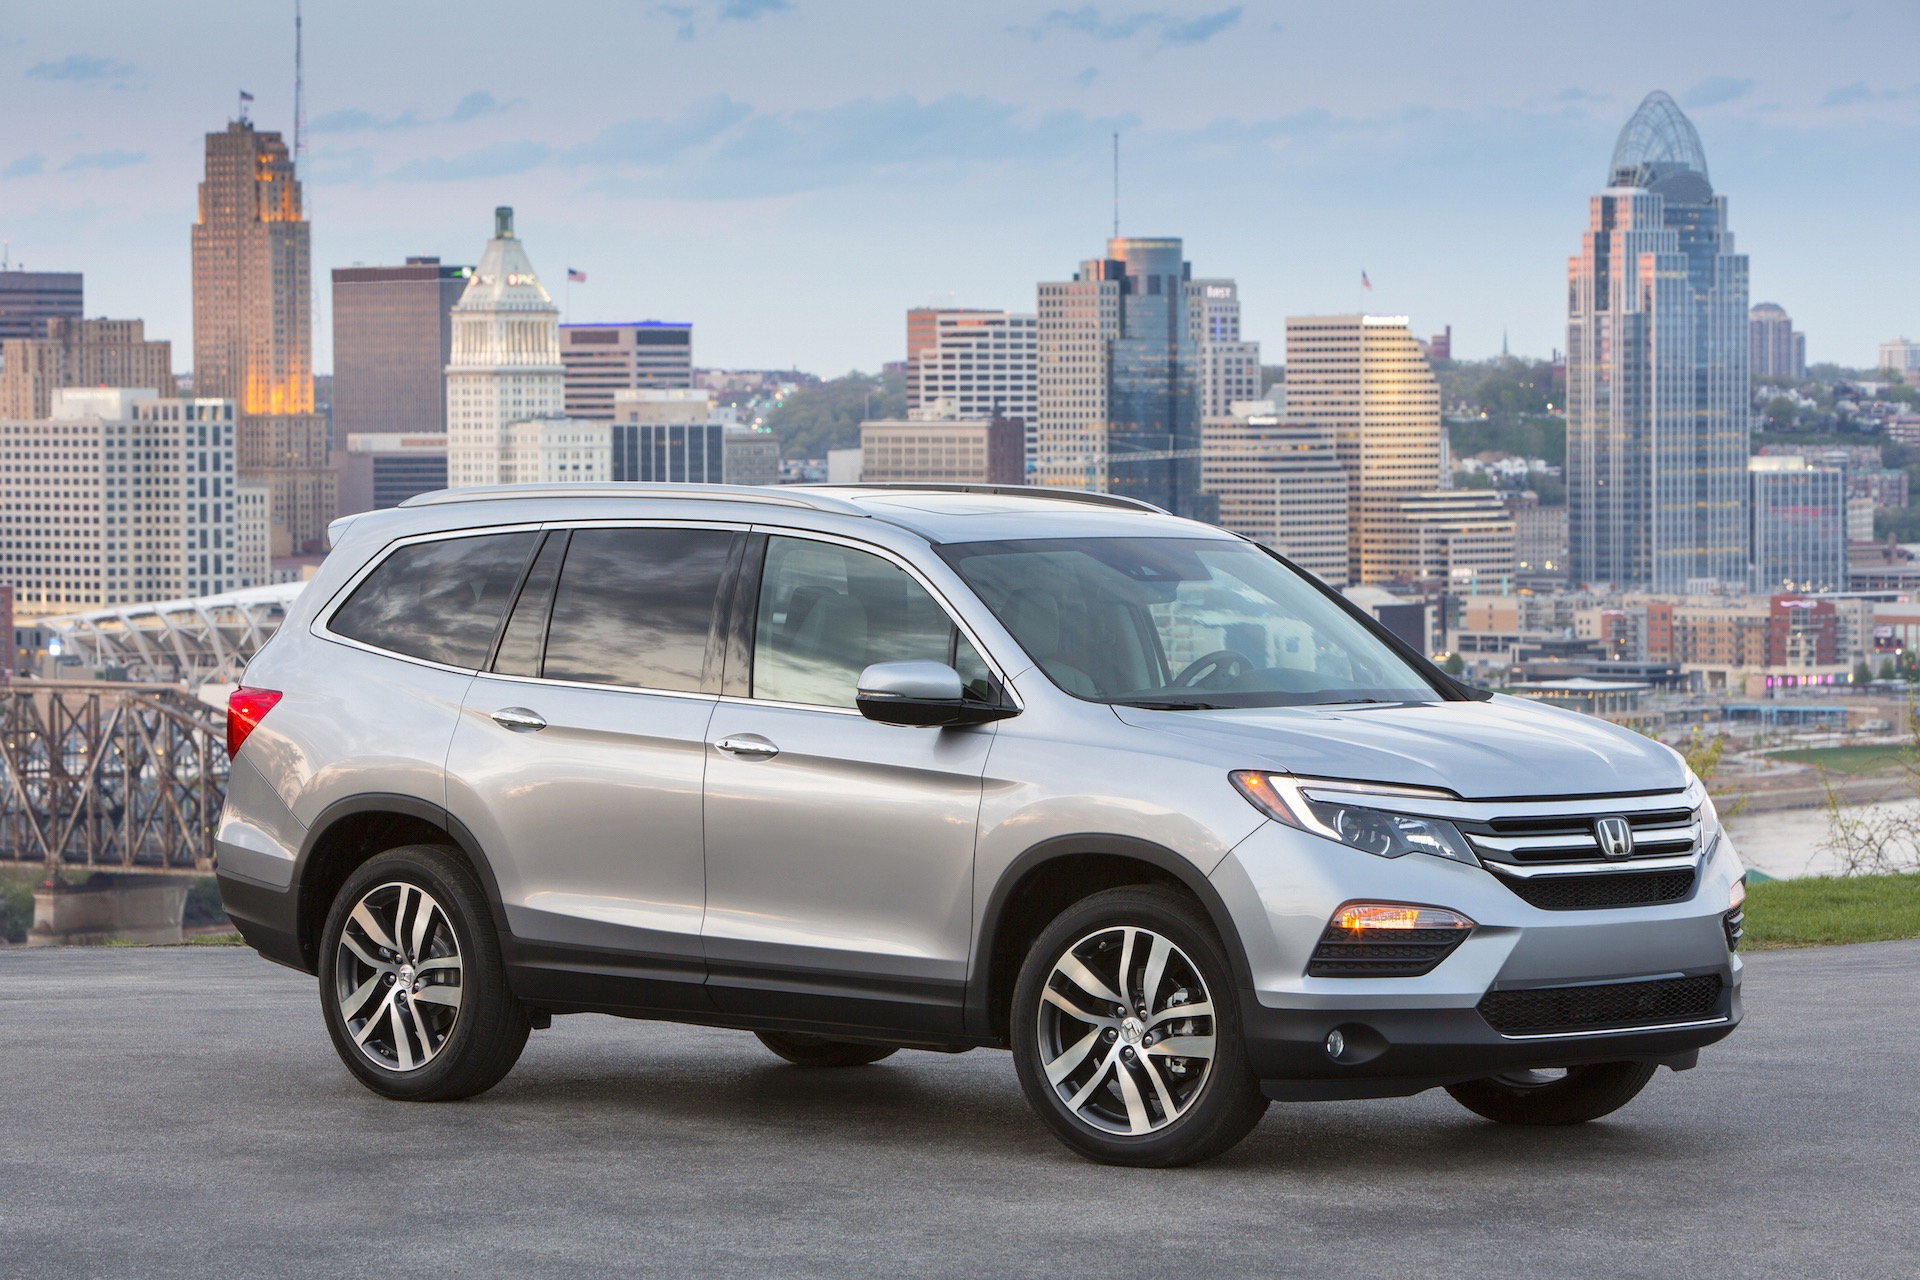 2016 Honda Pilot Review, Ratings, Specs, Prices, and Photos - The Car ...